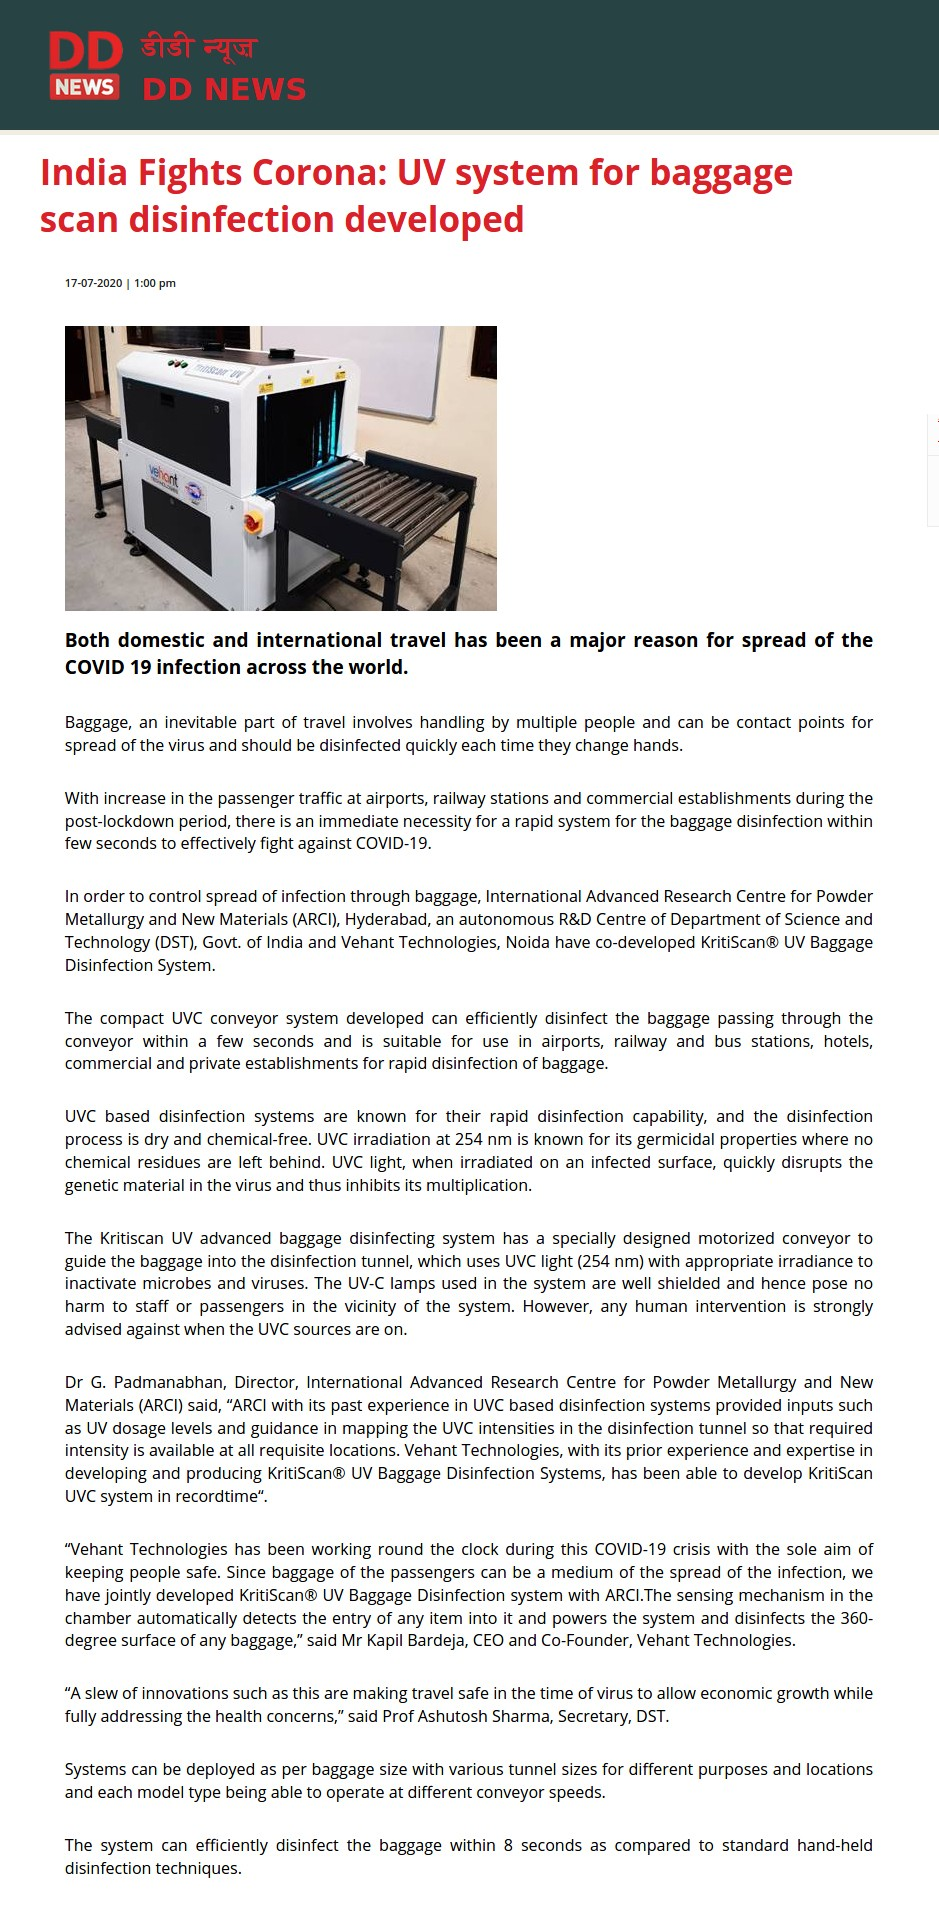 DD News covers Ultra Violet-C light based Baggage/luggage Disinfection System